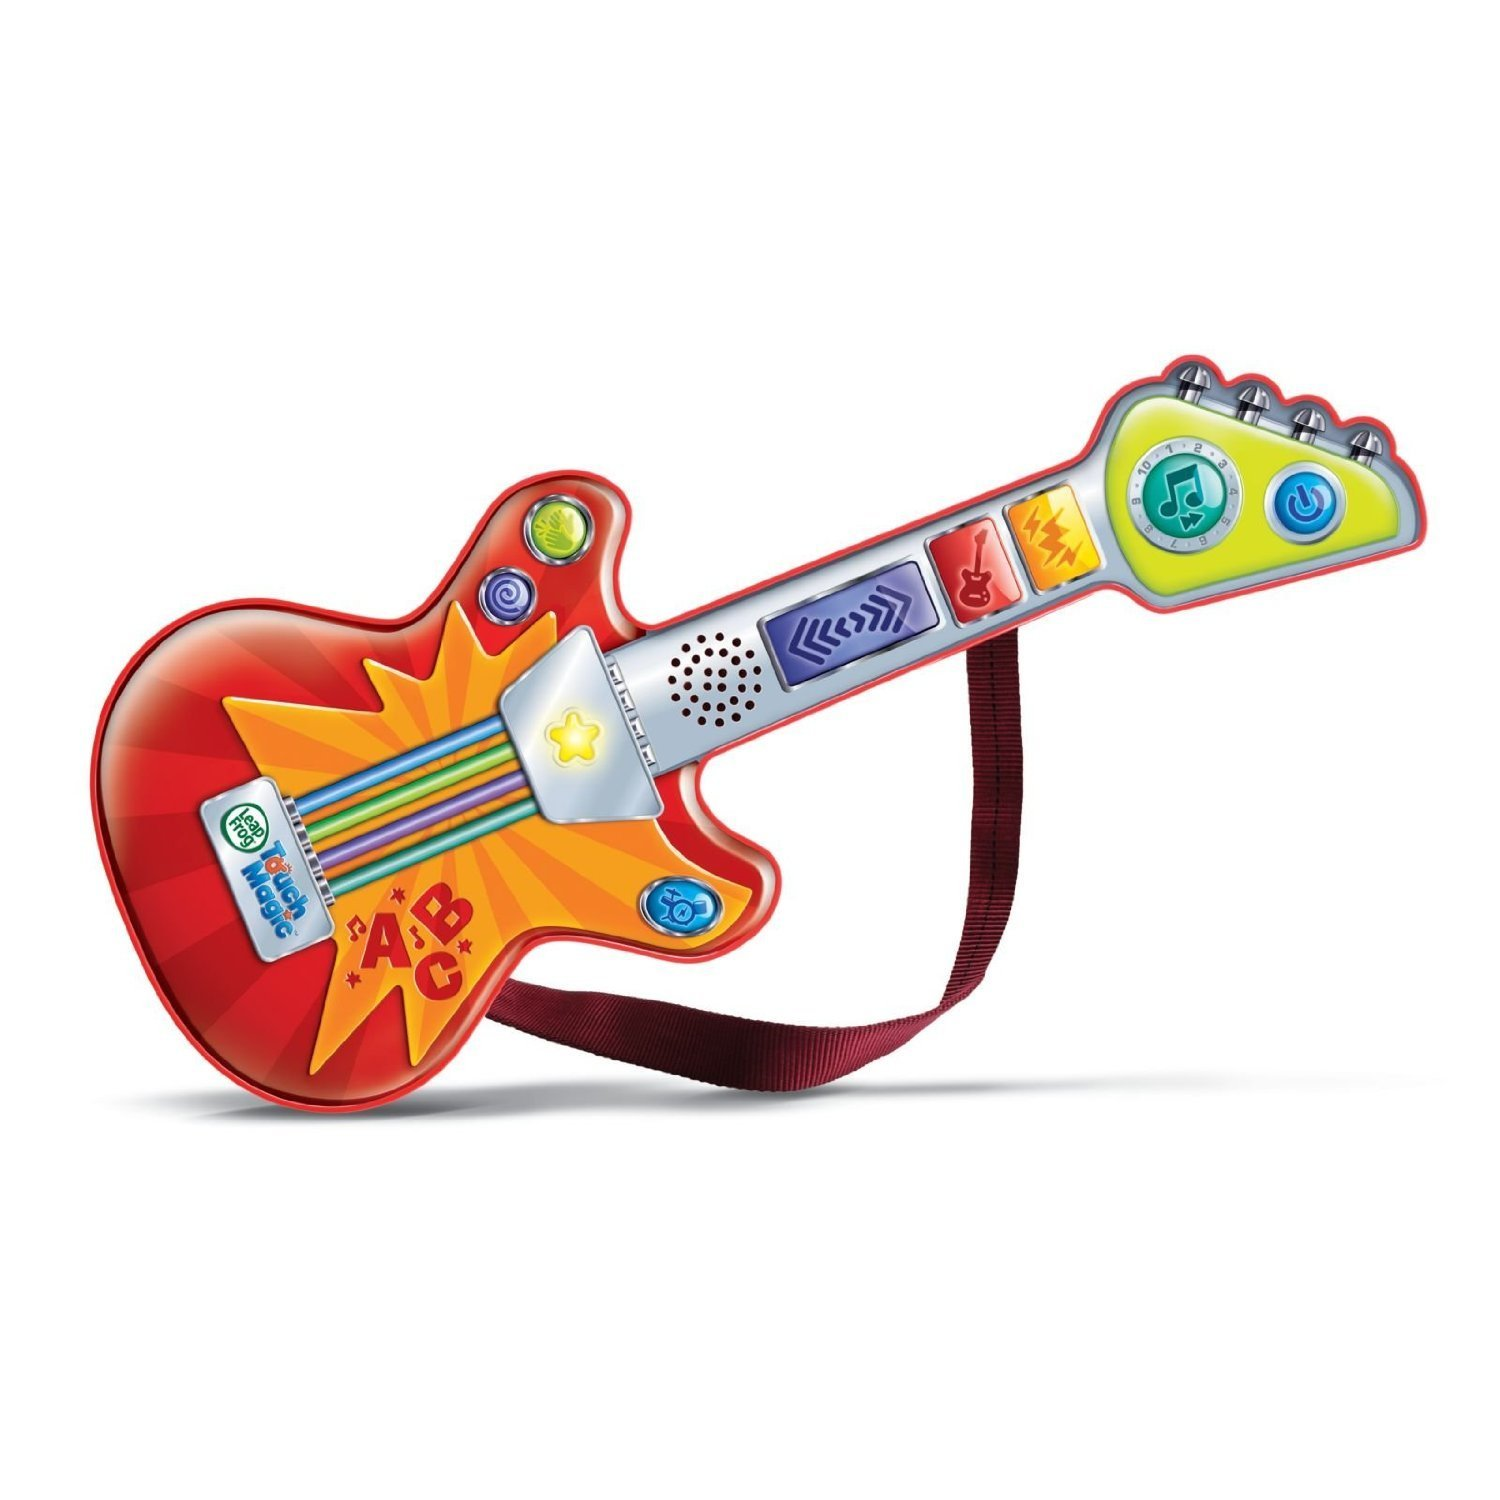 Đàn ghitar điện LeapFrog Touch Magic Rockin' Guitar